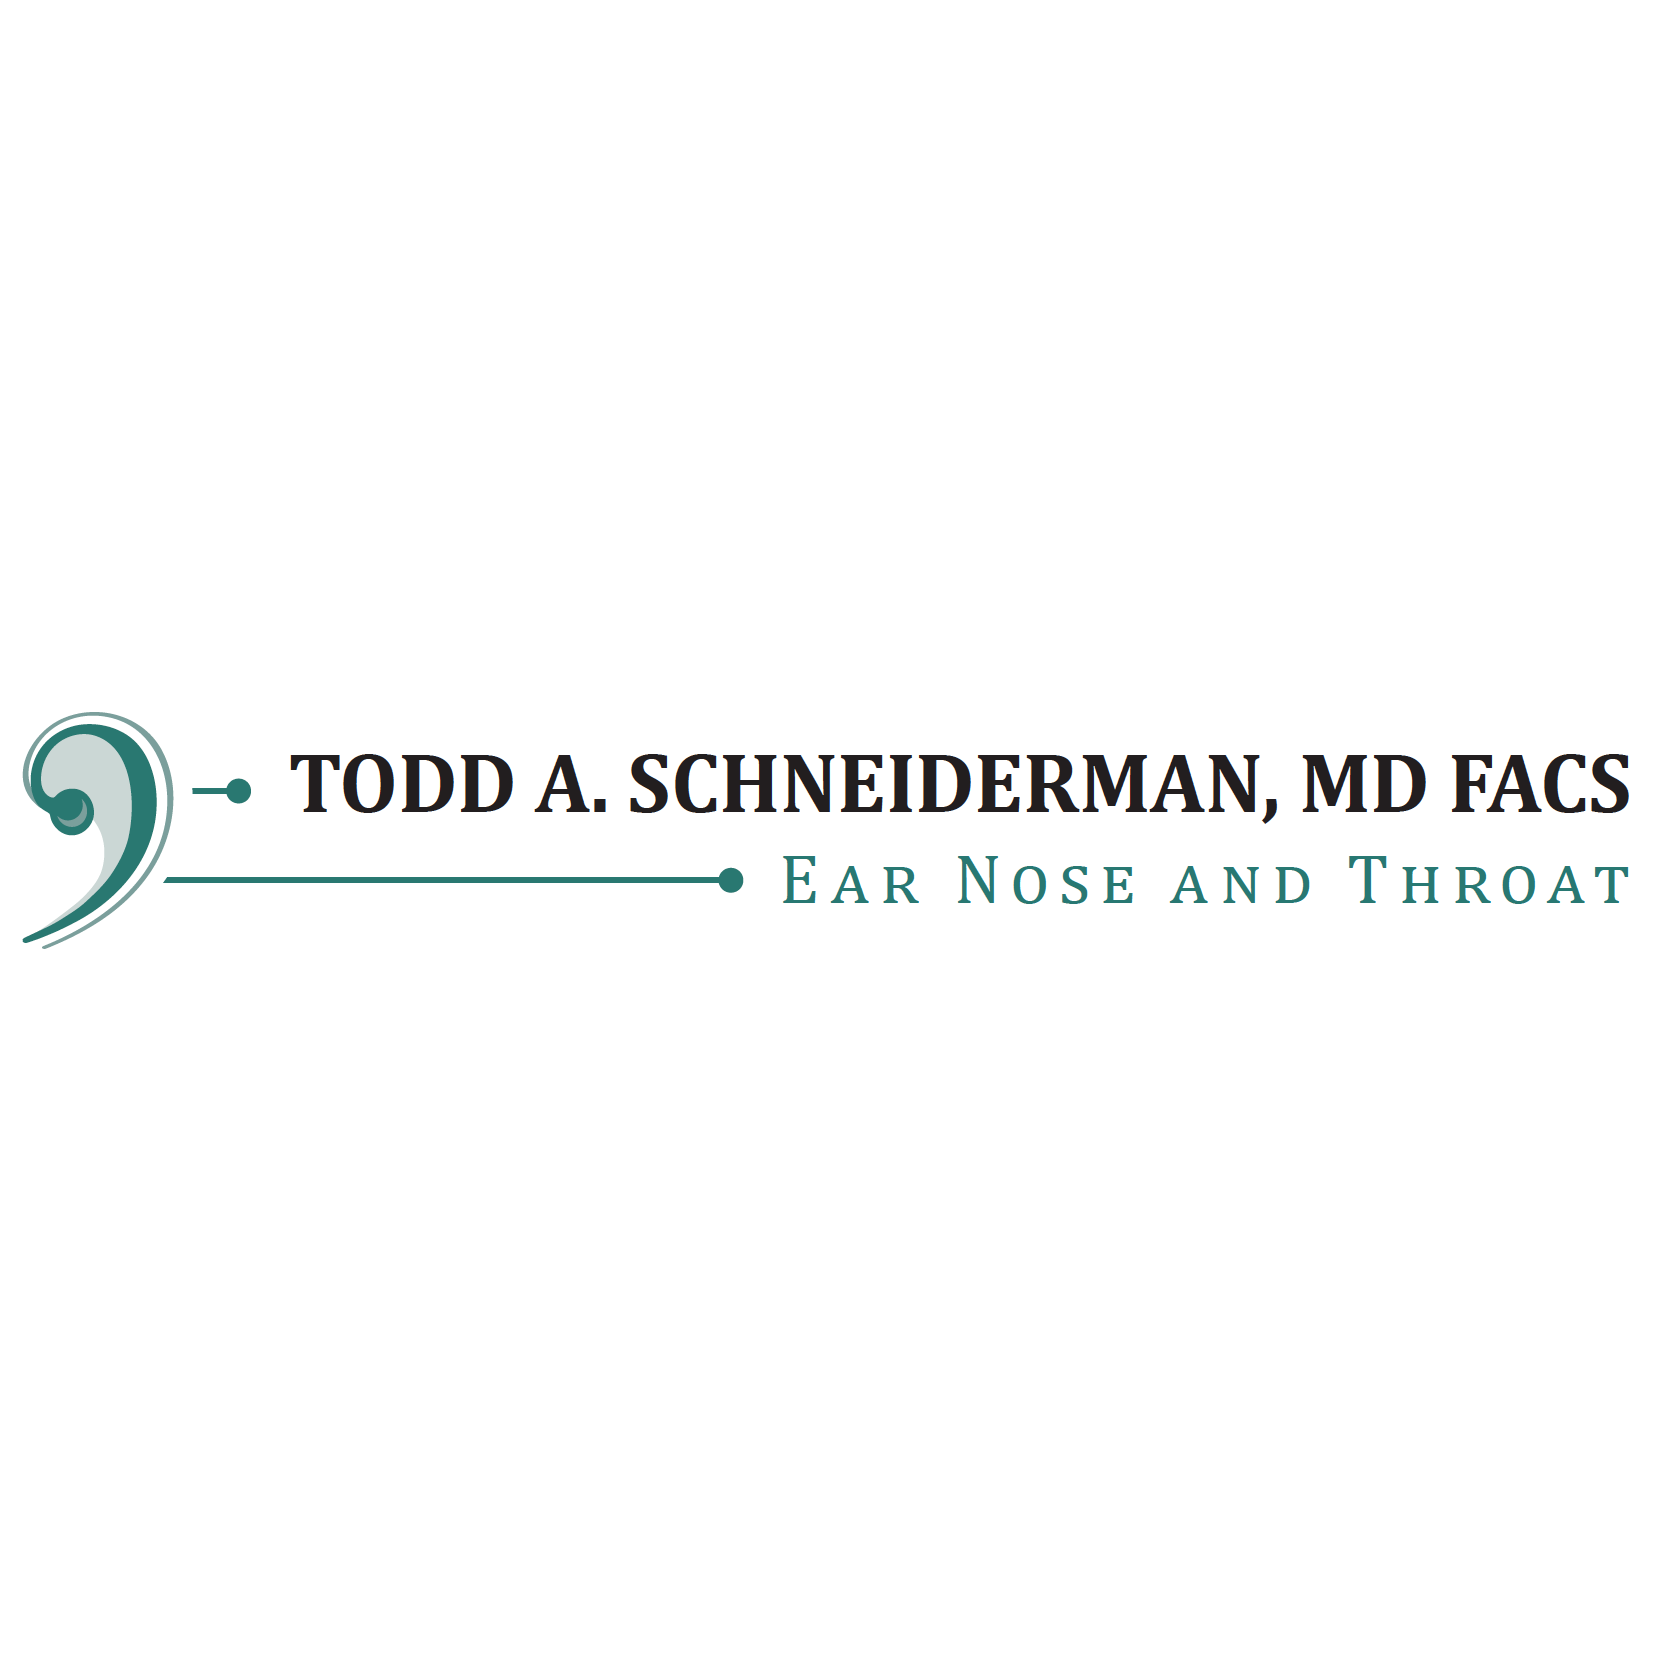 Todd Schneiderman, MD FACS Ear Nose and Throat